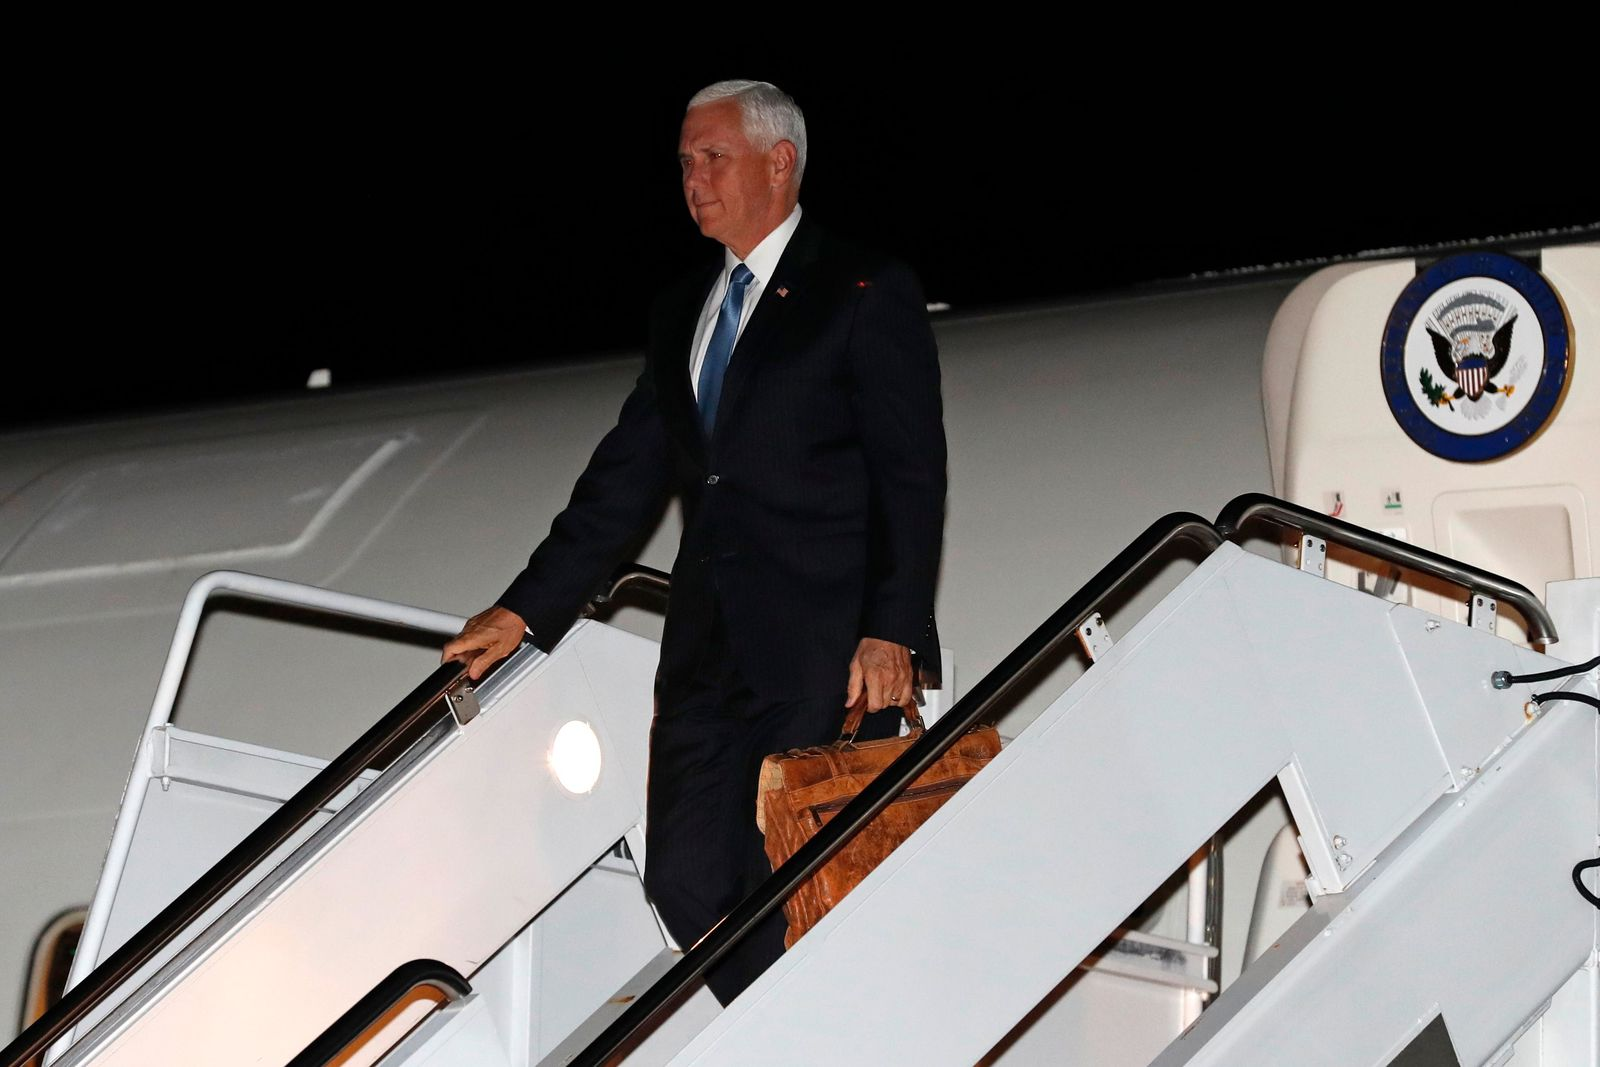 Vice President Mike Pence walks down the steps of Air Force Two, at Andrews Air Force Base, Md., Friday, Oct. 18, 2019, after his visit to Turkey to attend talks about the Kurds and Syria. (AP Photo/Jacquelyn Martin)